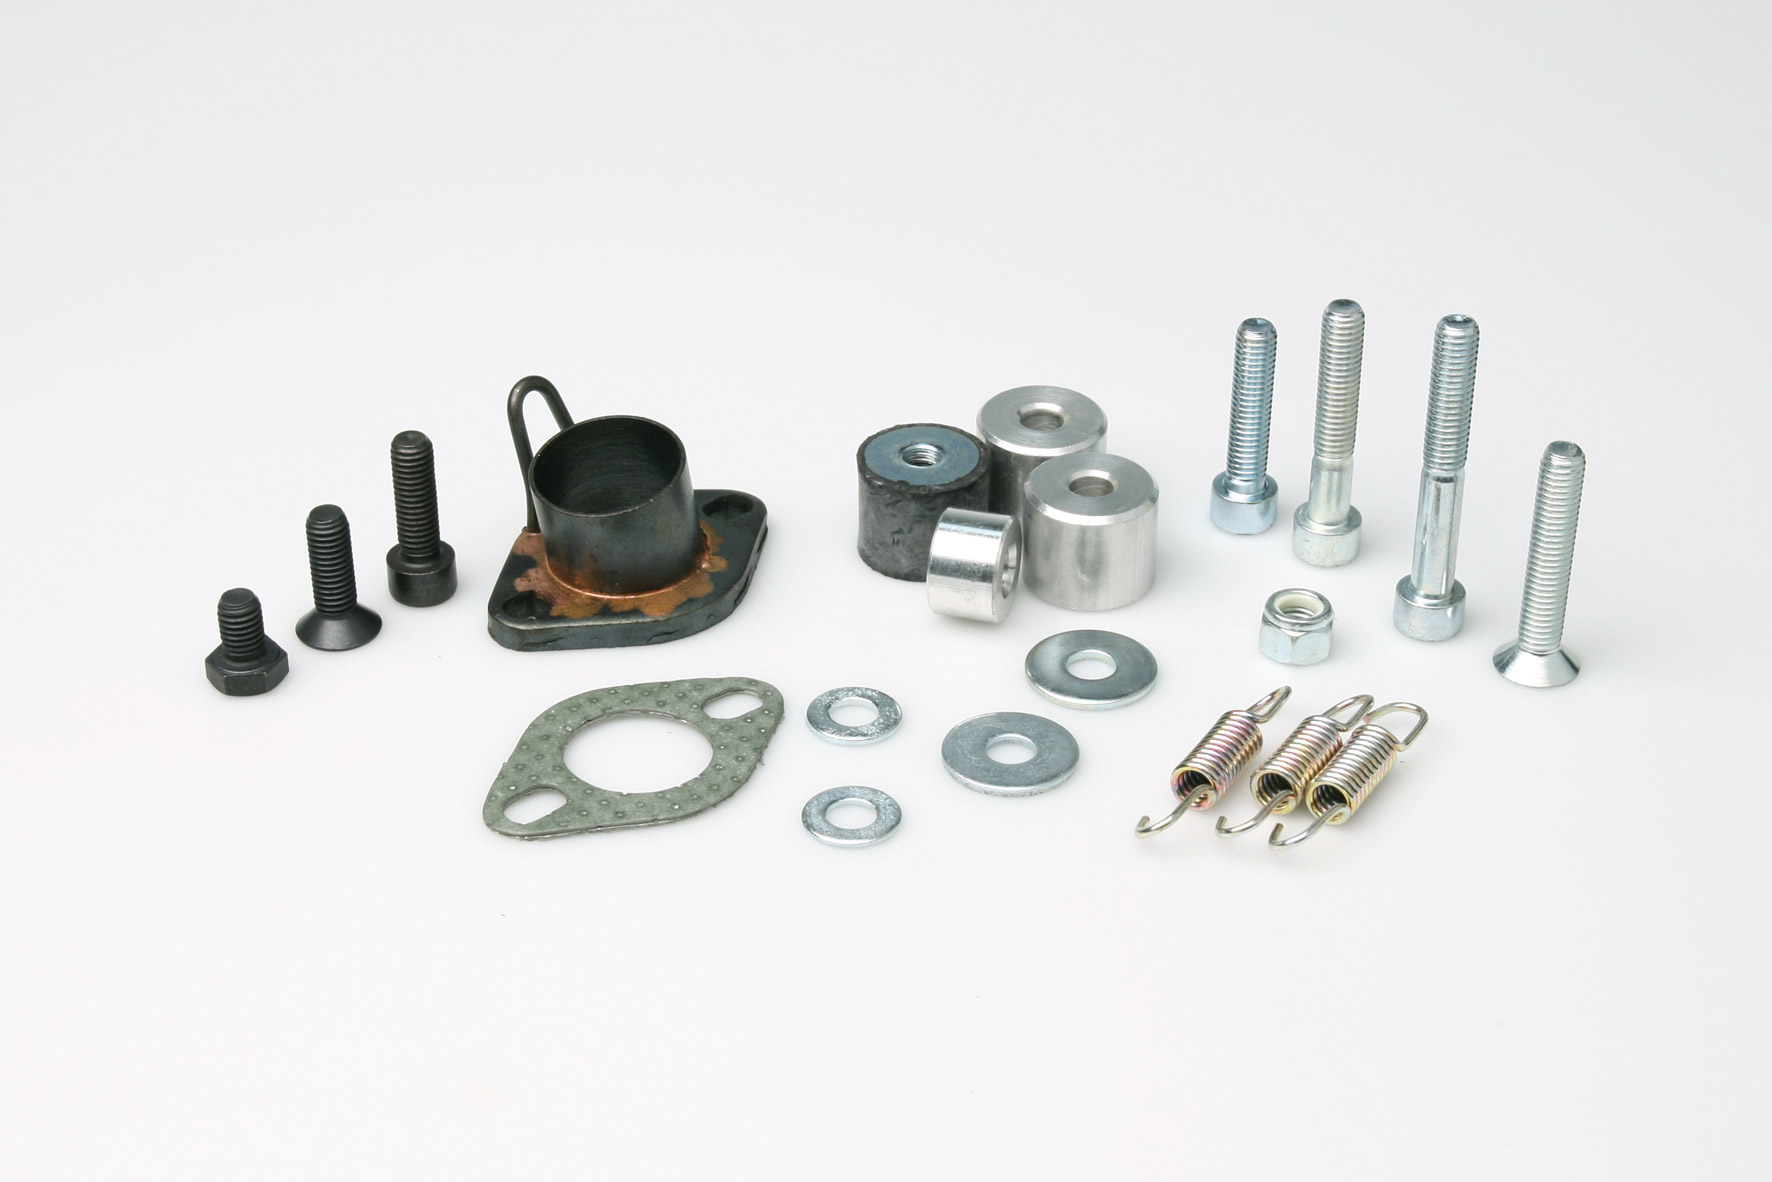 CONNECTION/BOLTS KIT for EXHAUST SYS. - Spare part for EXHAUST SYSTEMS 3211206 - 3212799 : out of production